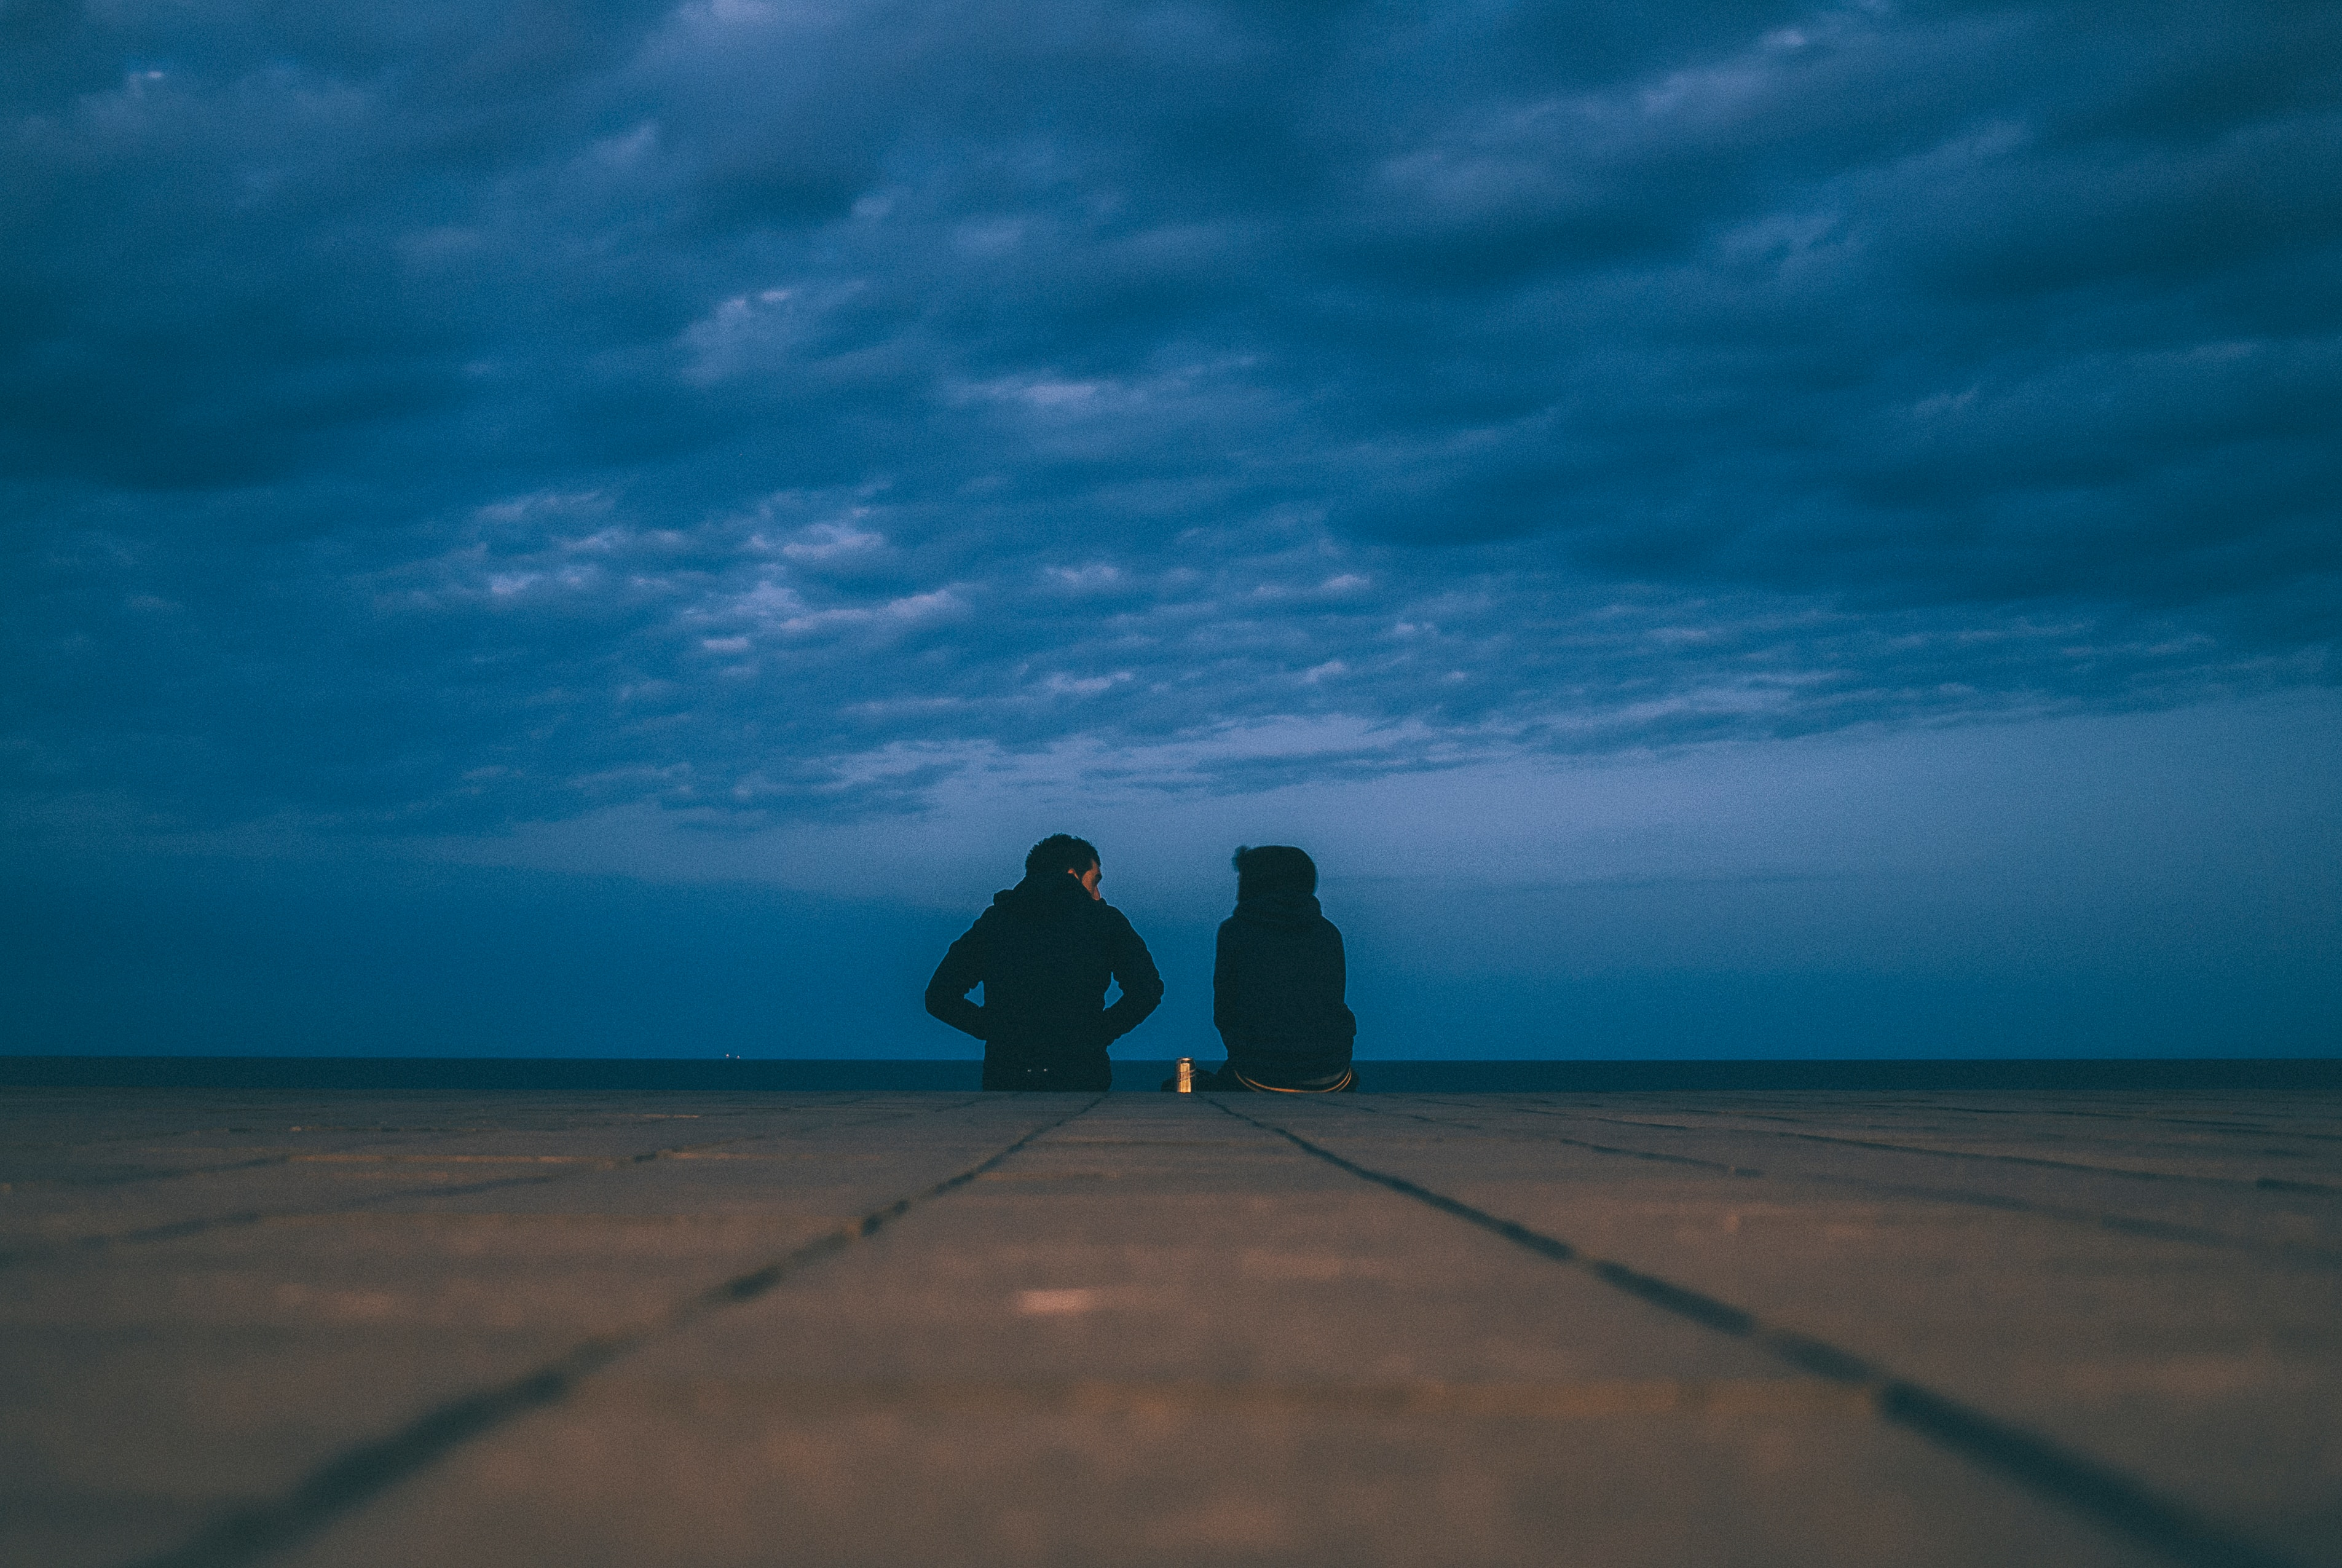 Two friends sit on the end of a dock, chatting with each other. They're wearing coats and the sky looks dark and moody. Who is seeking God's wisdom through you?